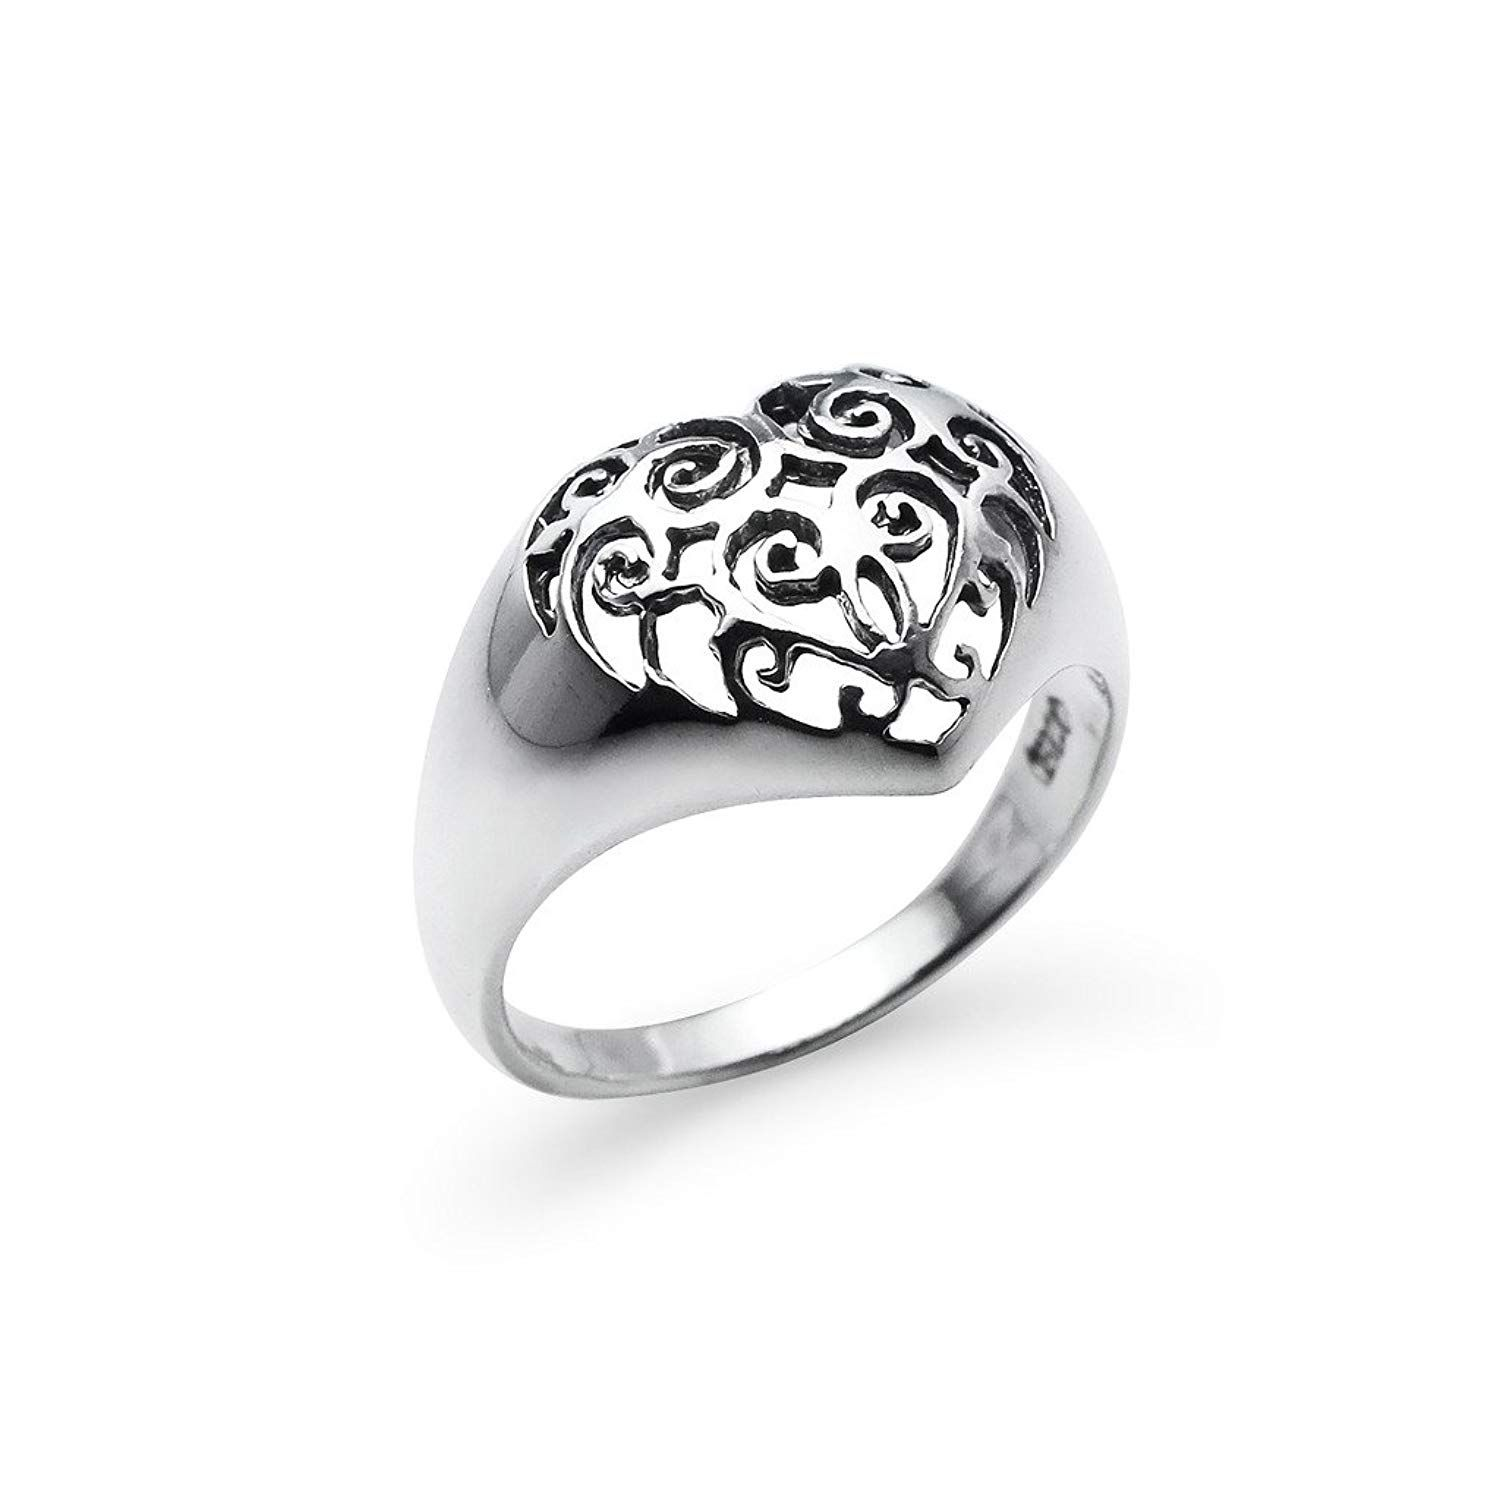 1fa9afffafe78 Vintage His Beauty/Her Beast Couple Lovers Promise Ring Engagement ...